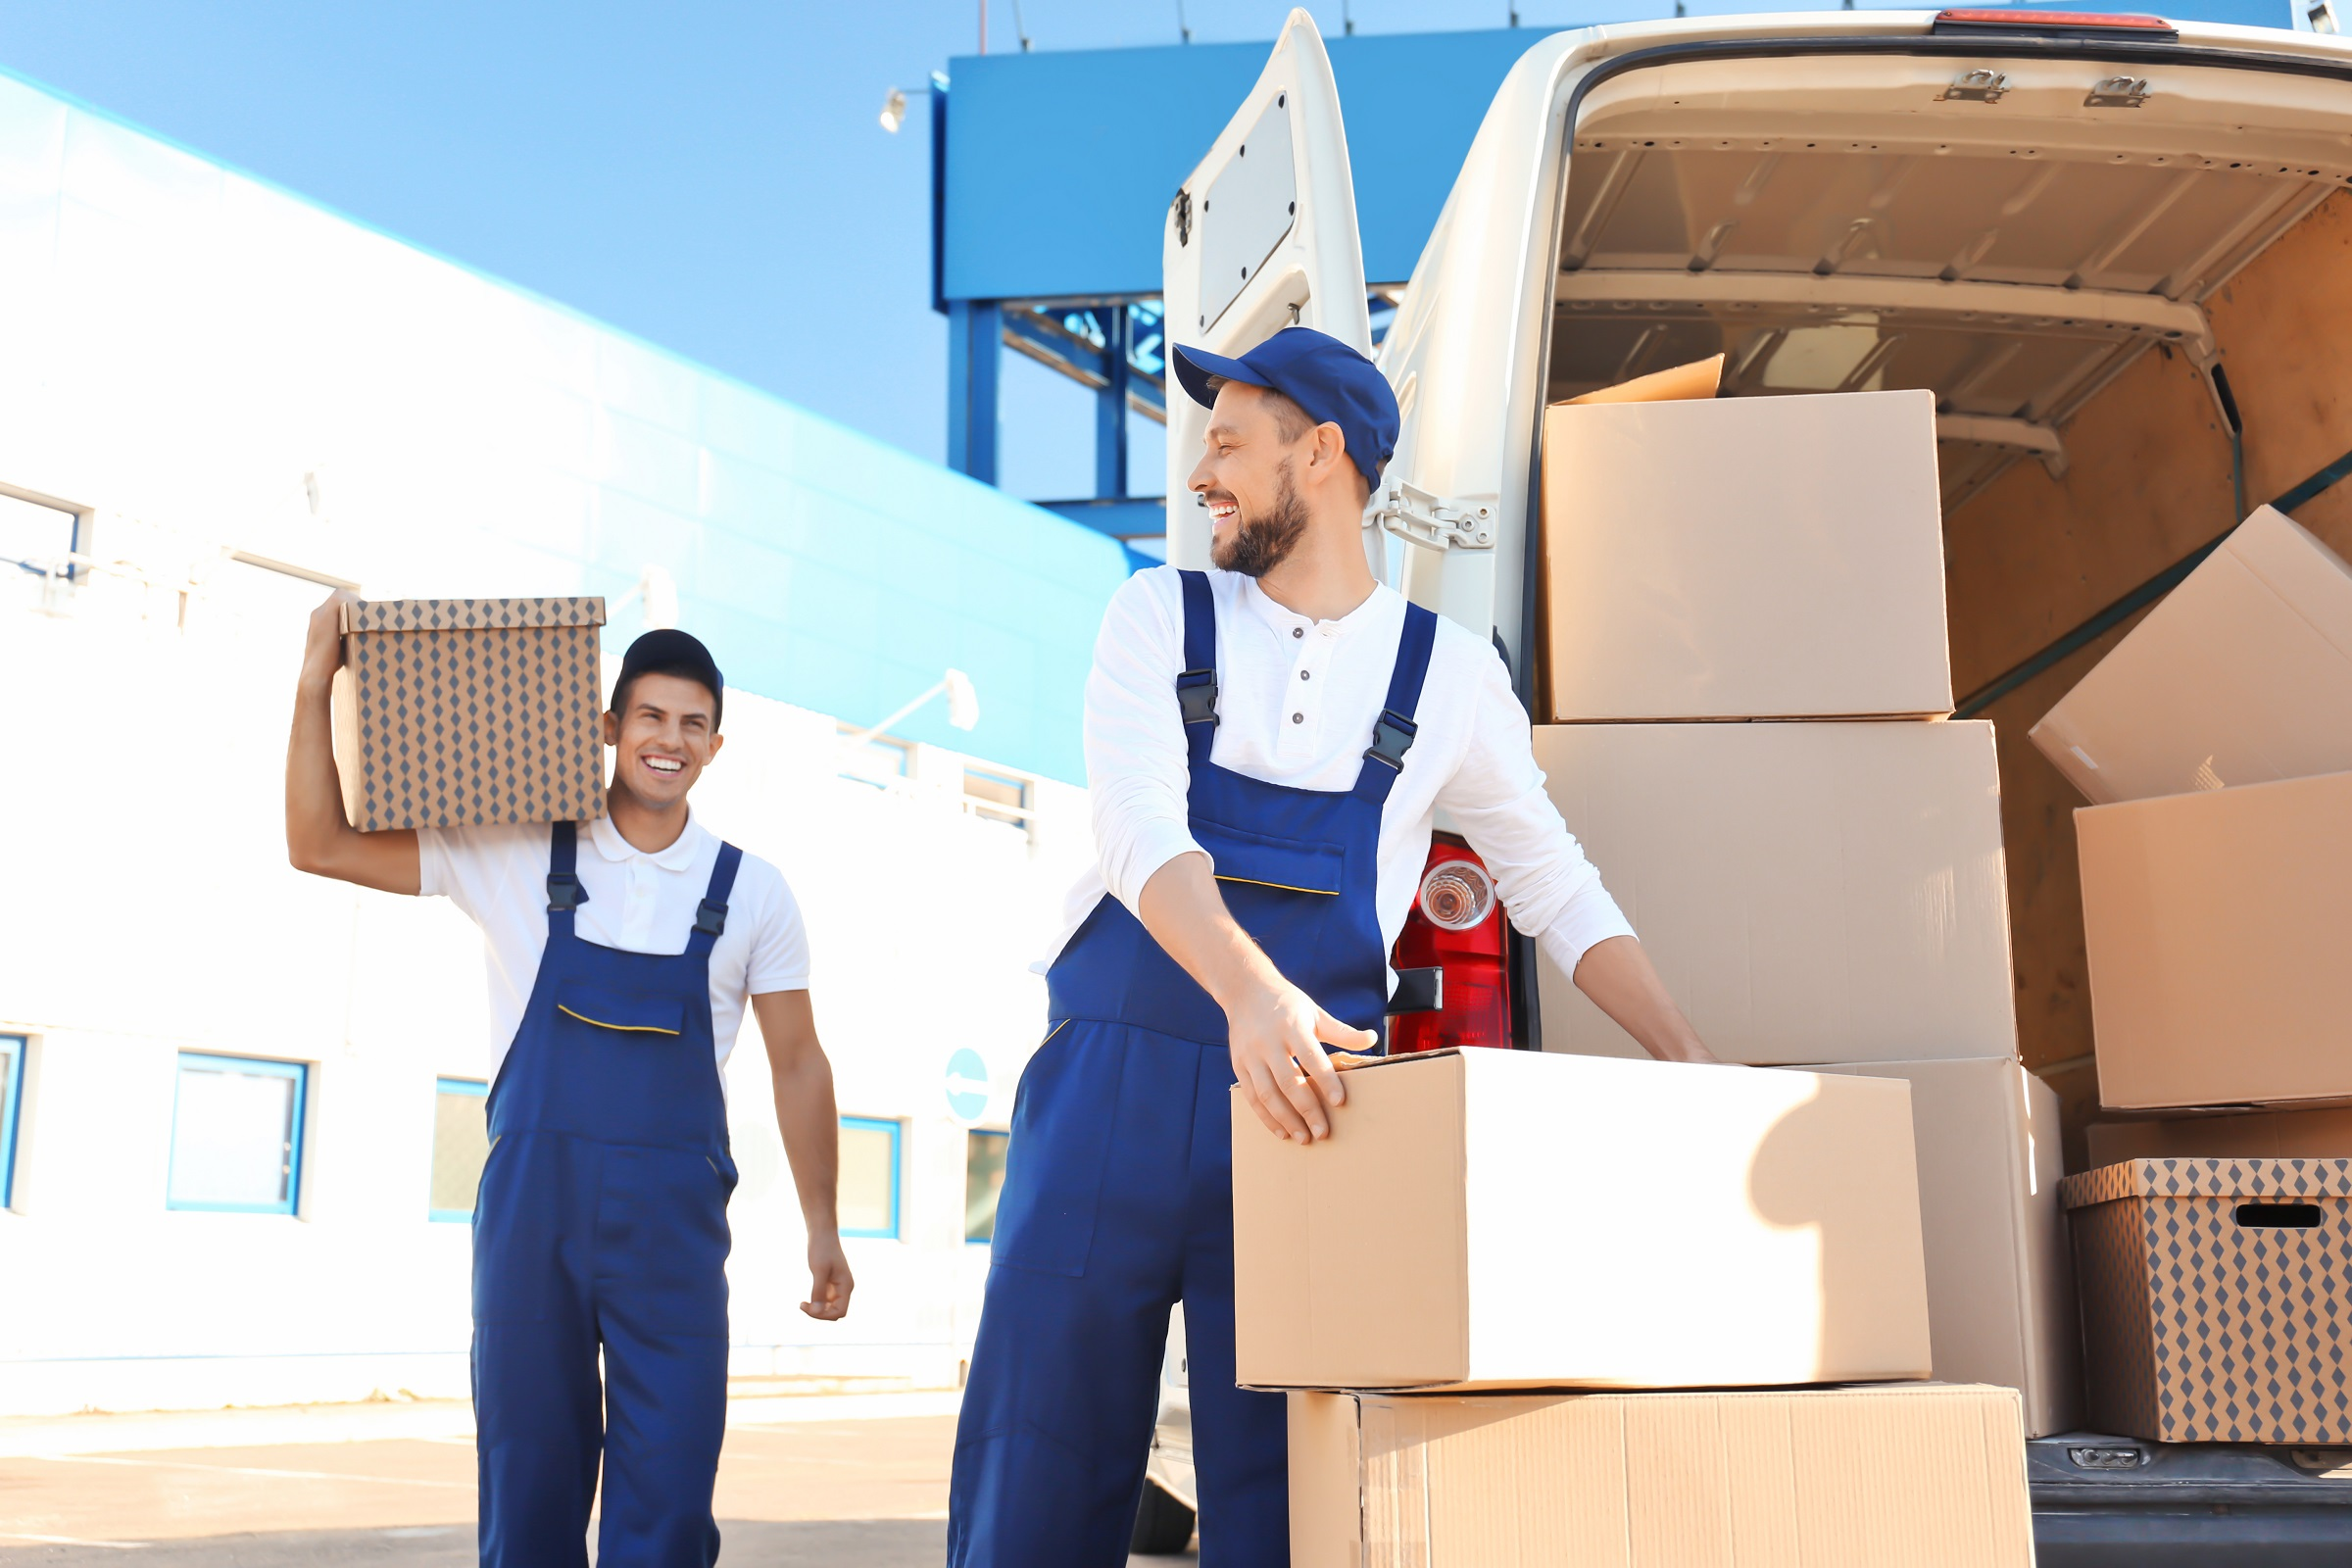 Things to avoid when looking for a moving company